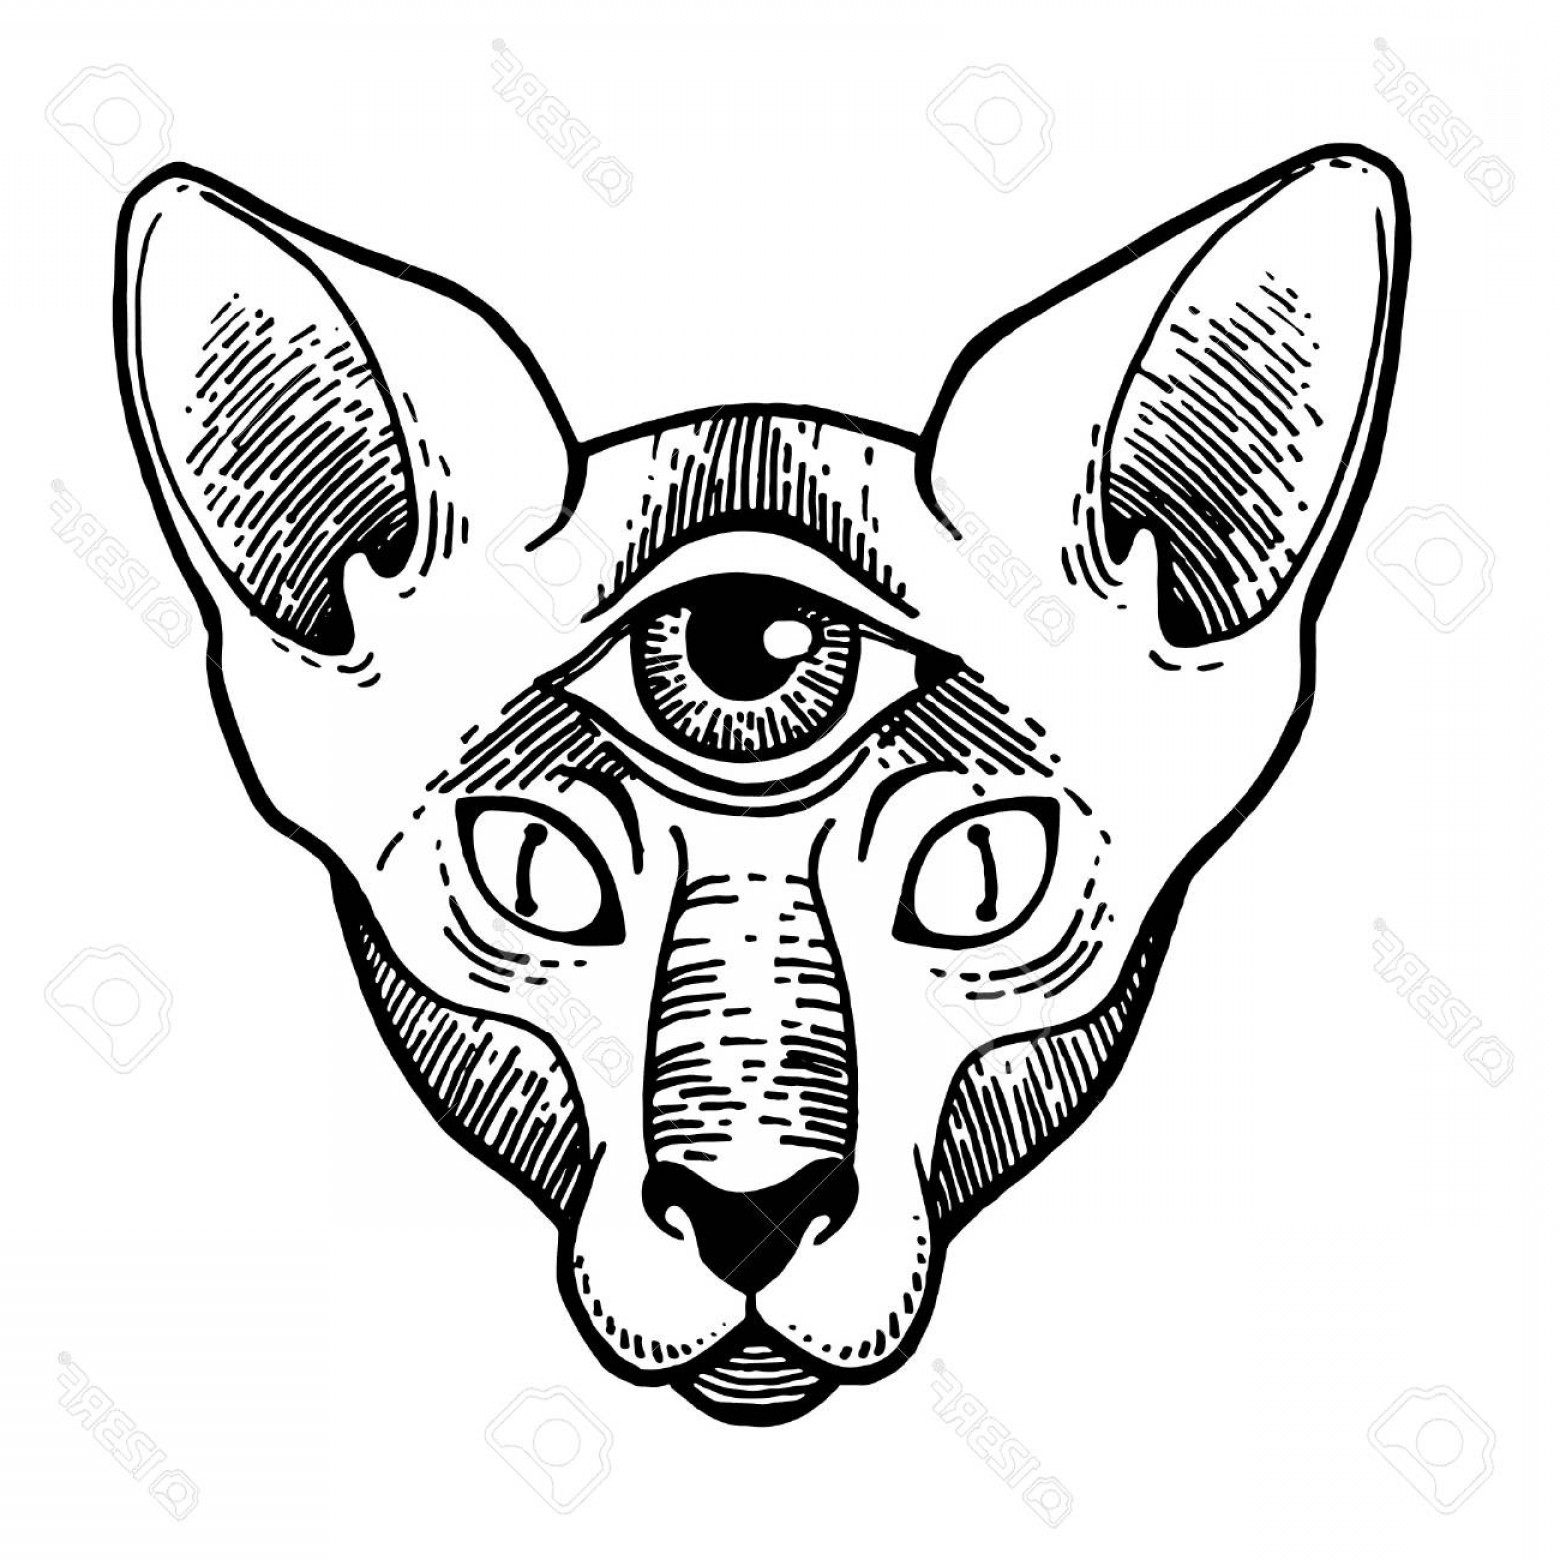 Vector Cats 3: Photostock Vector Tattoo Design Of Cat With Eyes Artwork For Print And Textiles